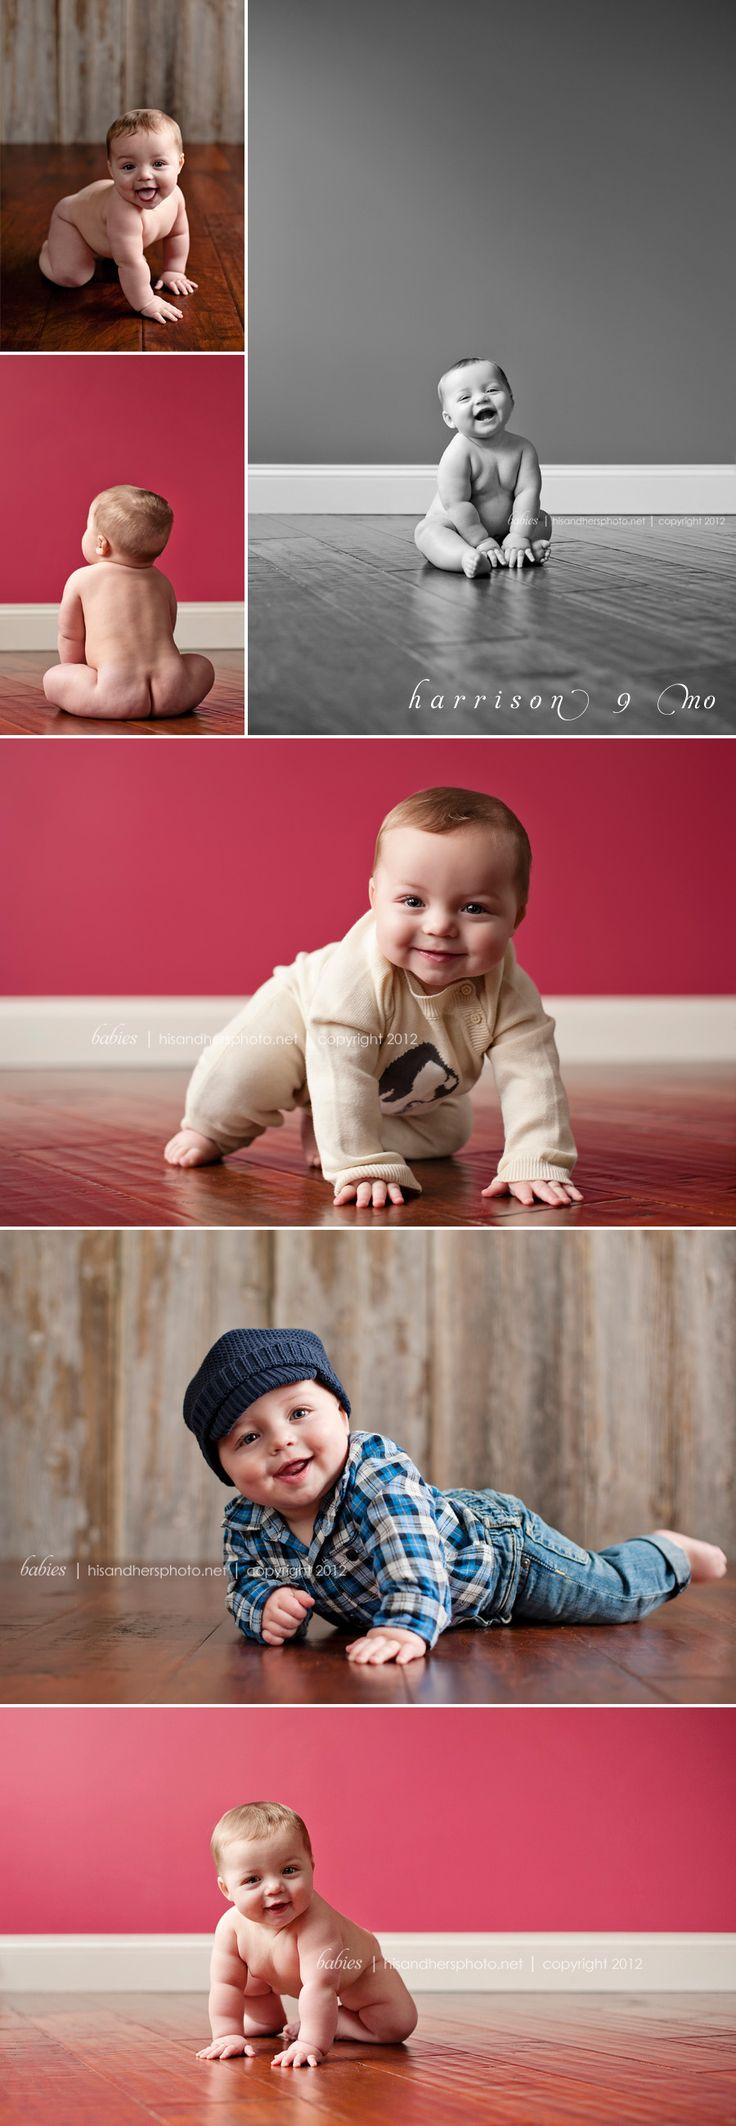 Baby Harrison is 9 months old | Des Moines, Iowa Photographer Darcy Milder | His & Hers